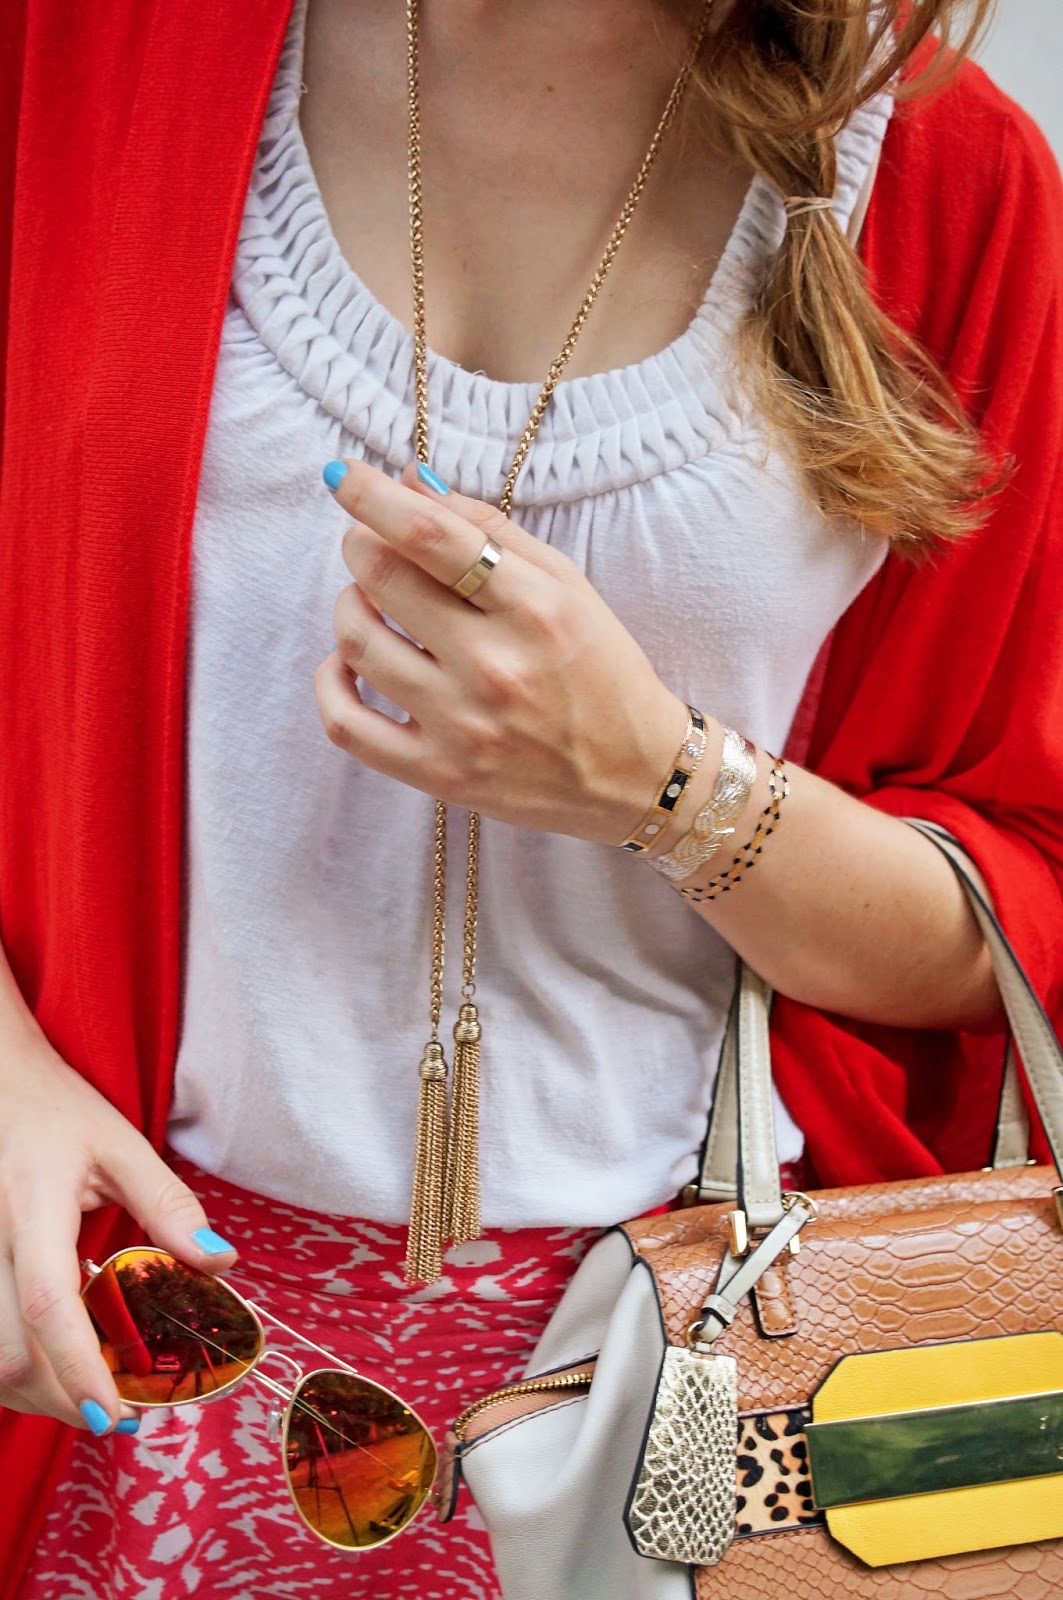 Loving all of these boho chic accessories for Summer!